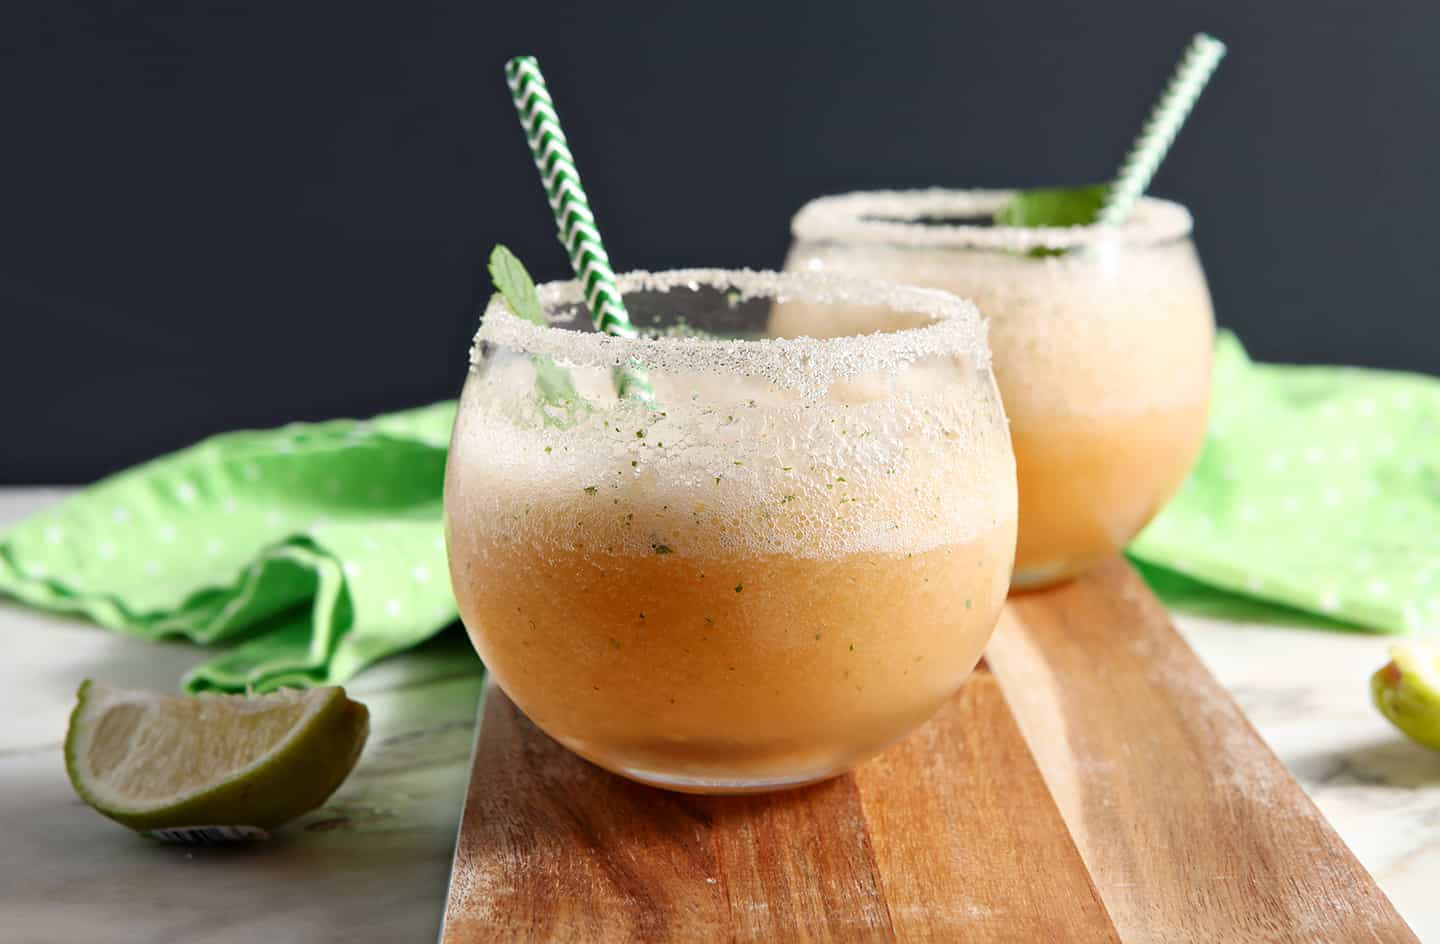 Two Margaritas are served on a wooden serving platter with lime wedges, rimmed with sugar, and garnished with mint